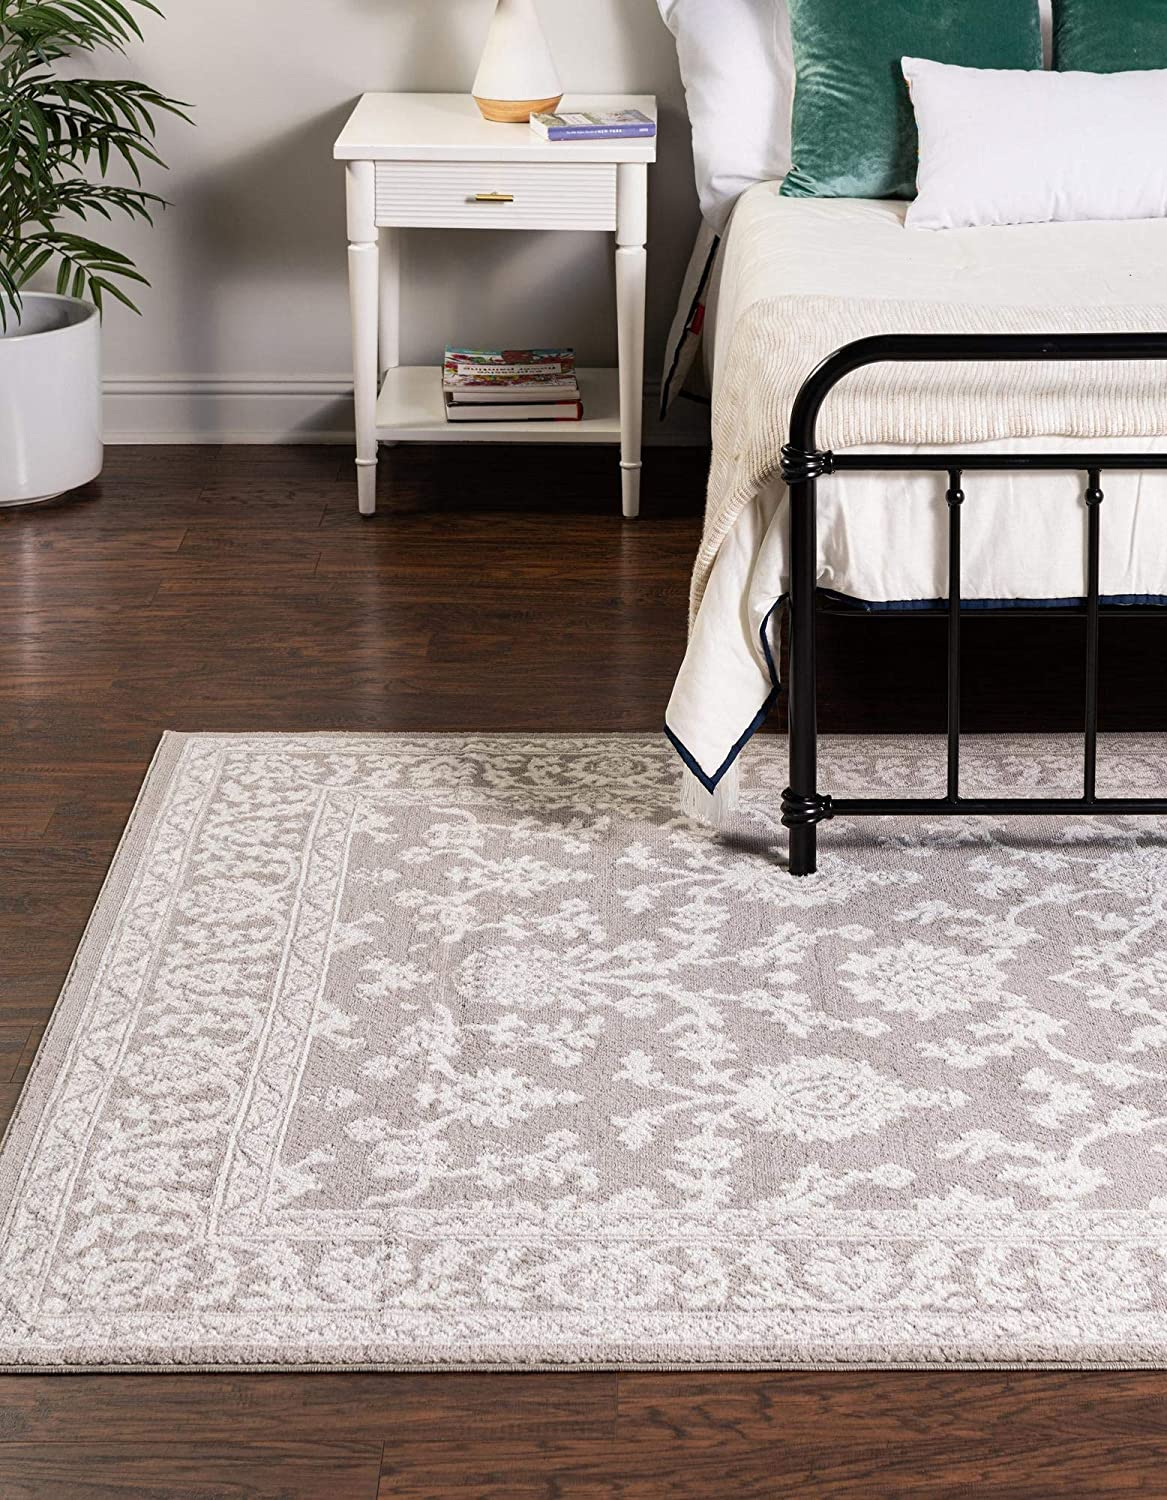 Reservation Rugs.com Charlotte Lowest price challenge Collection Rug – 4' x Low-Pile 6' Light Gray